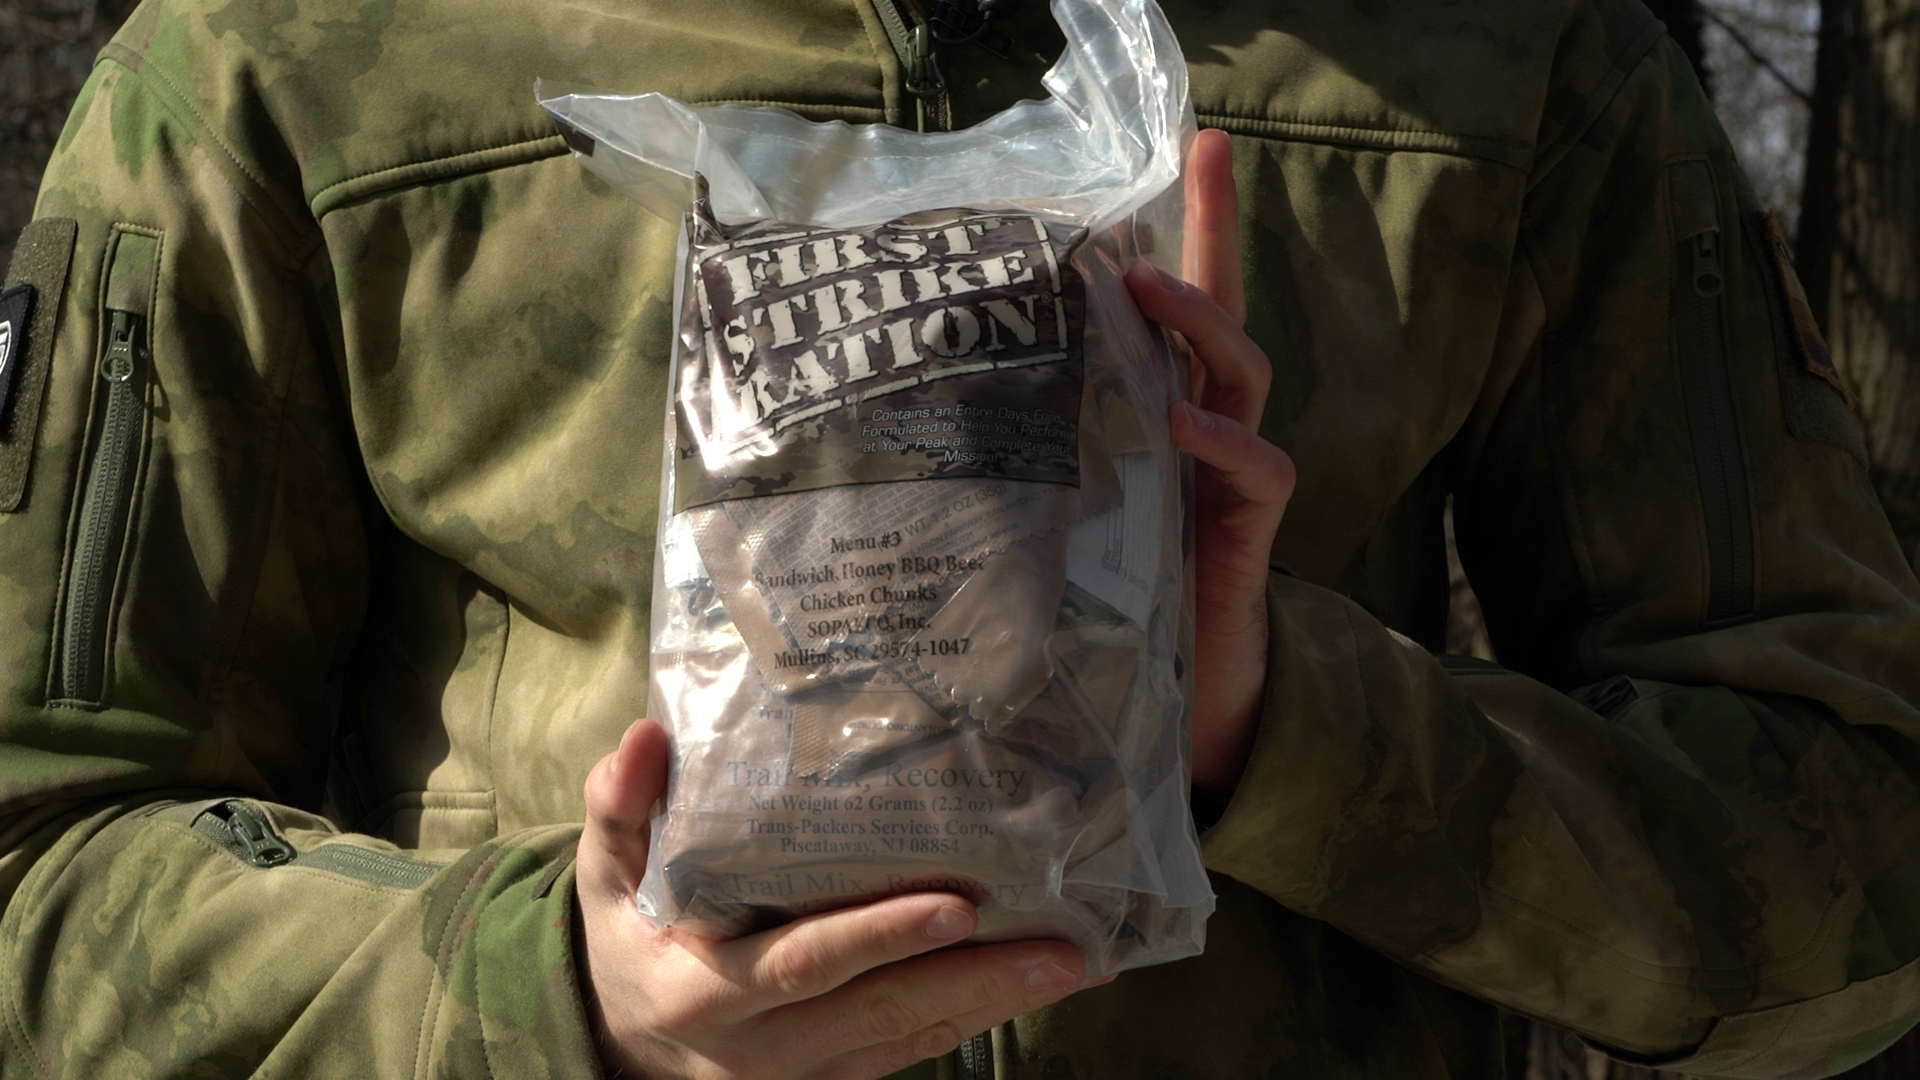 'First Strike Ration' food pack